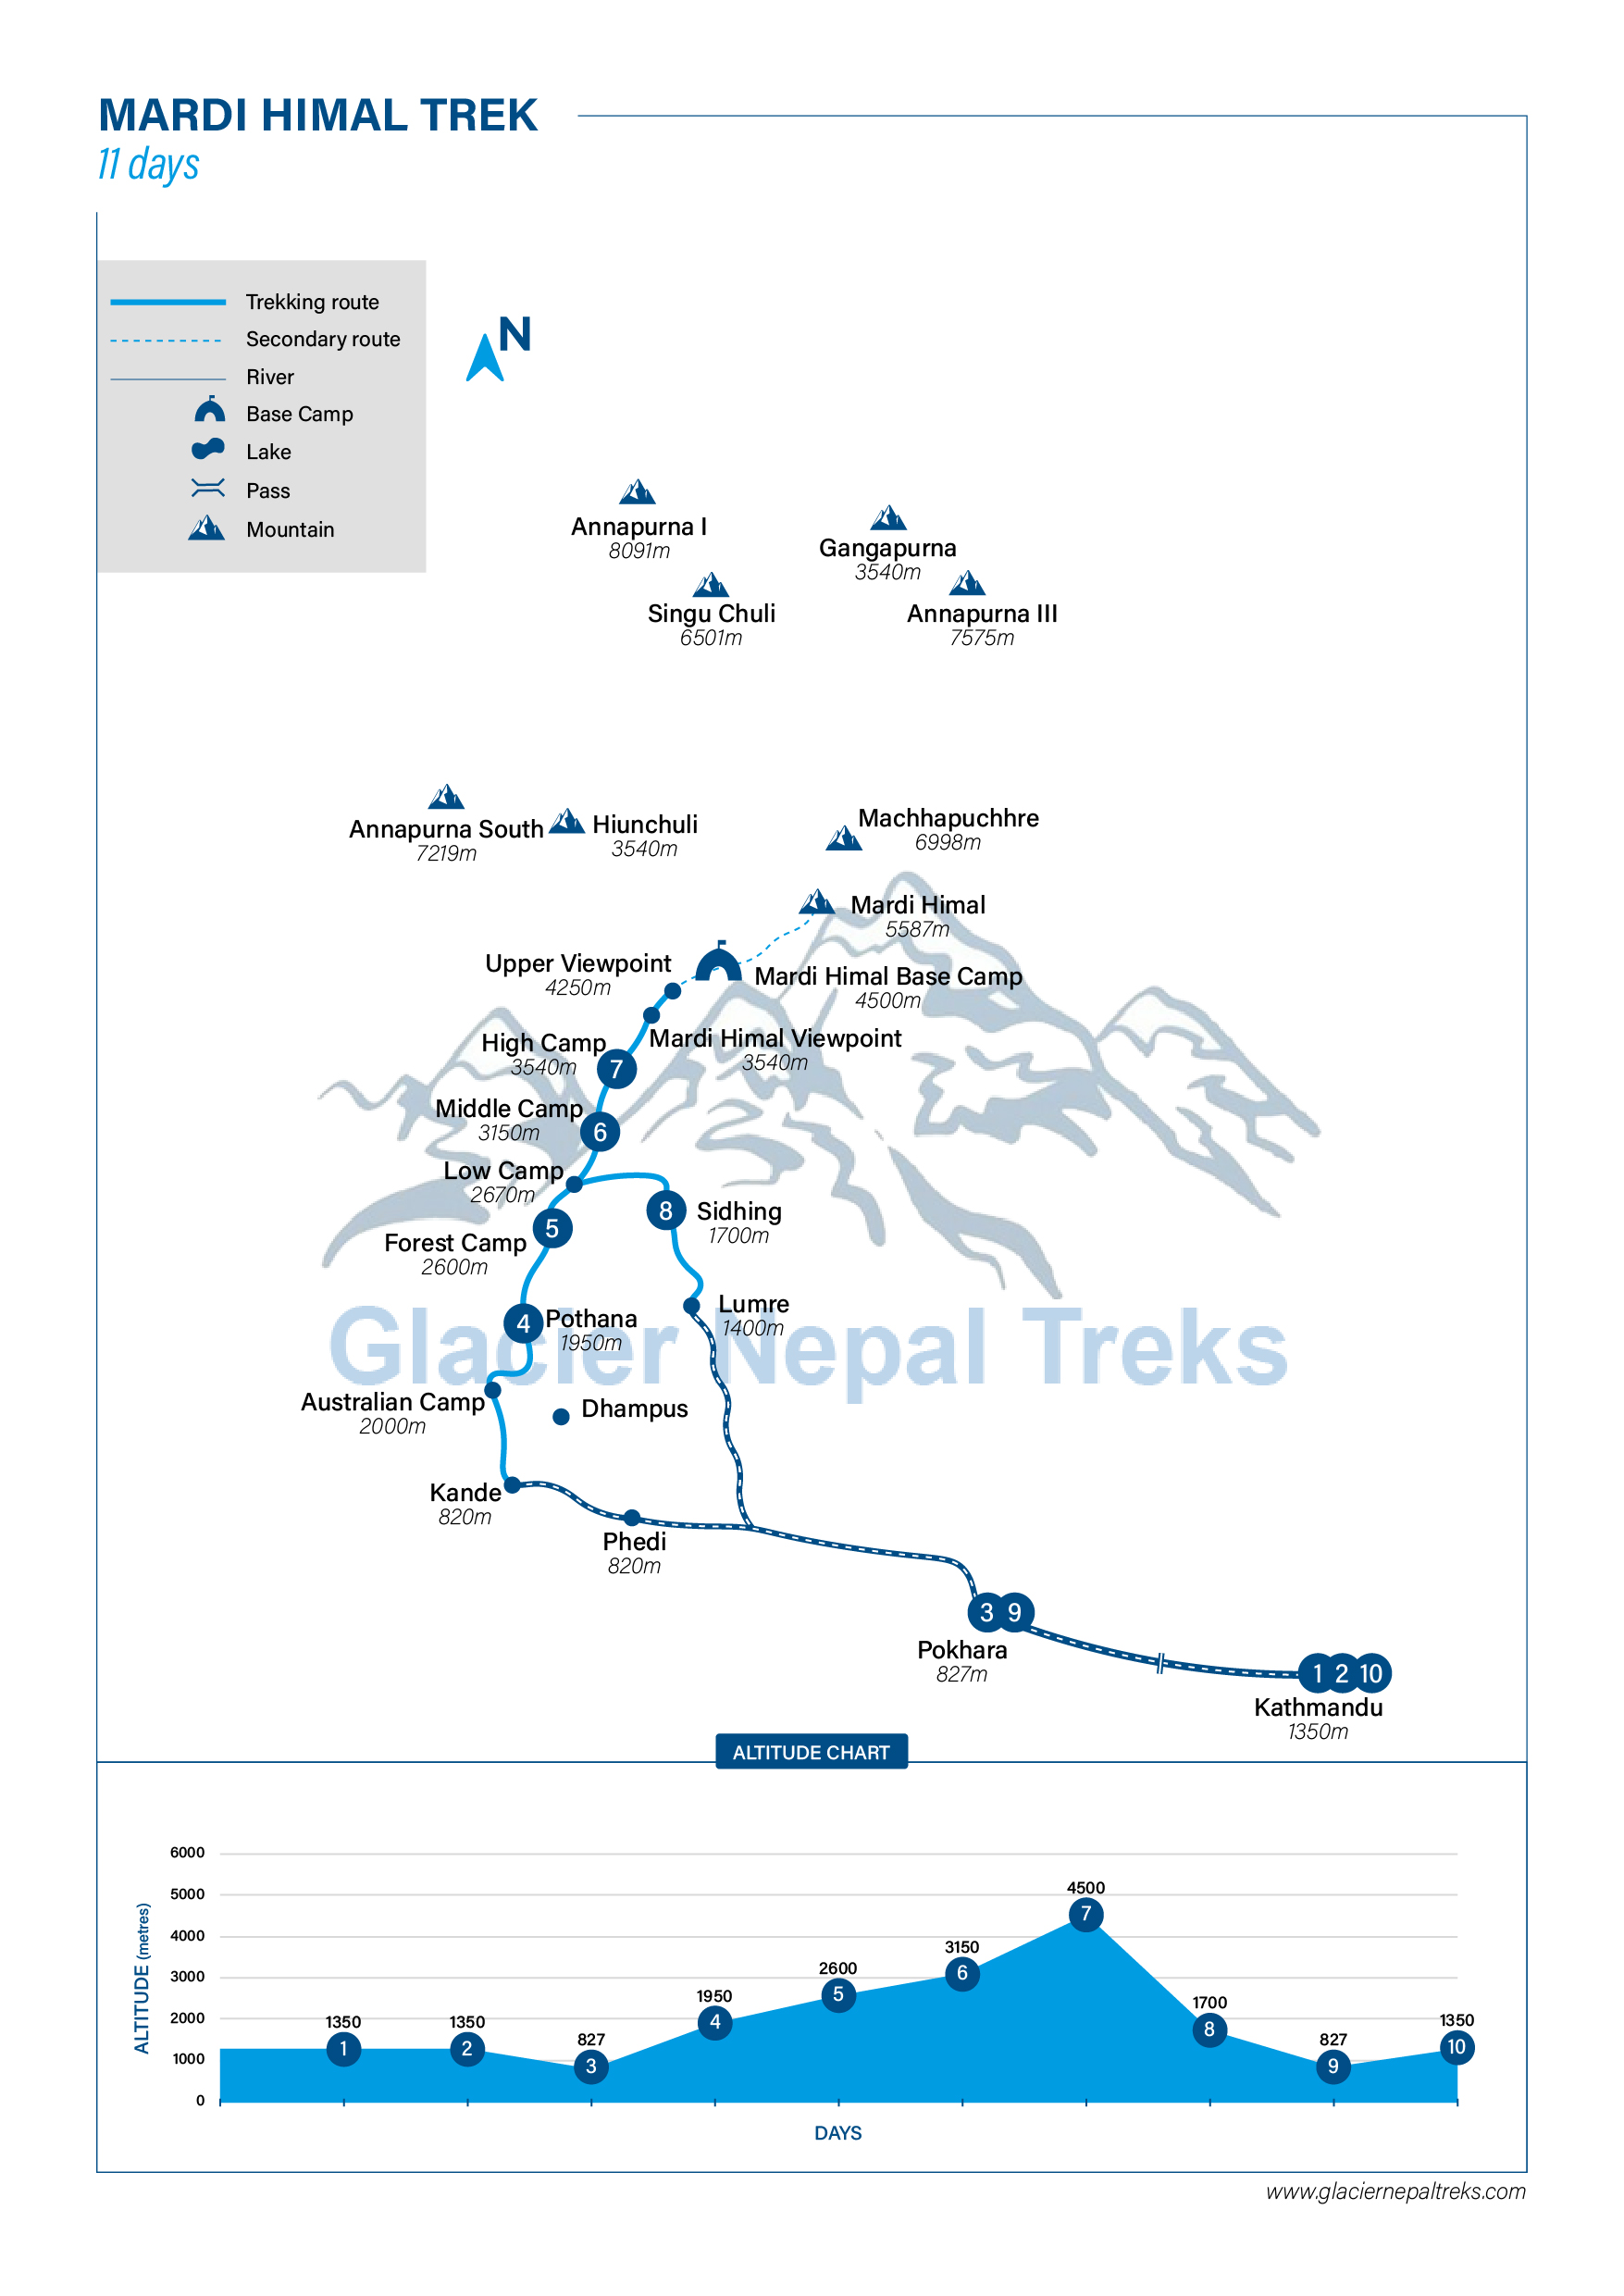 Route Map for Mardi Himal Trek | Glacier Nepal